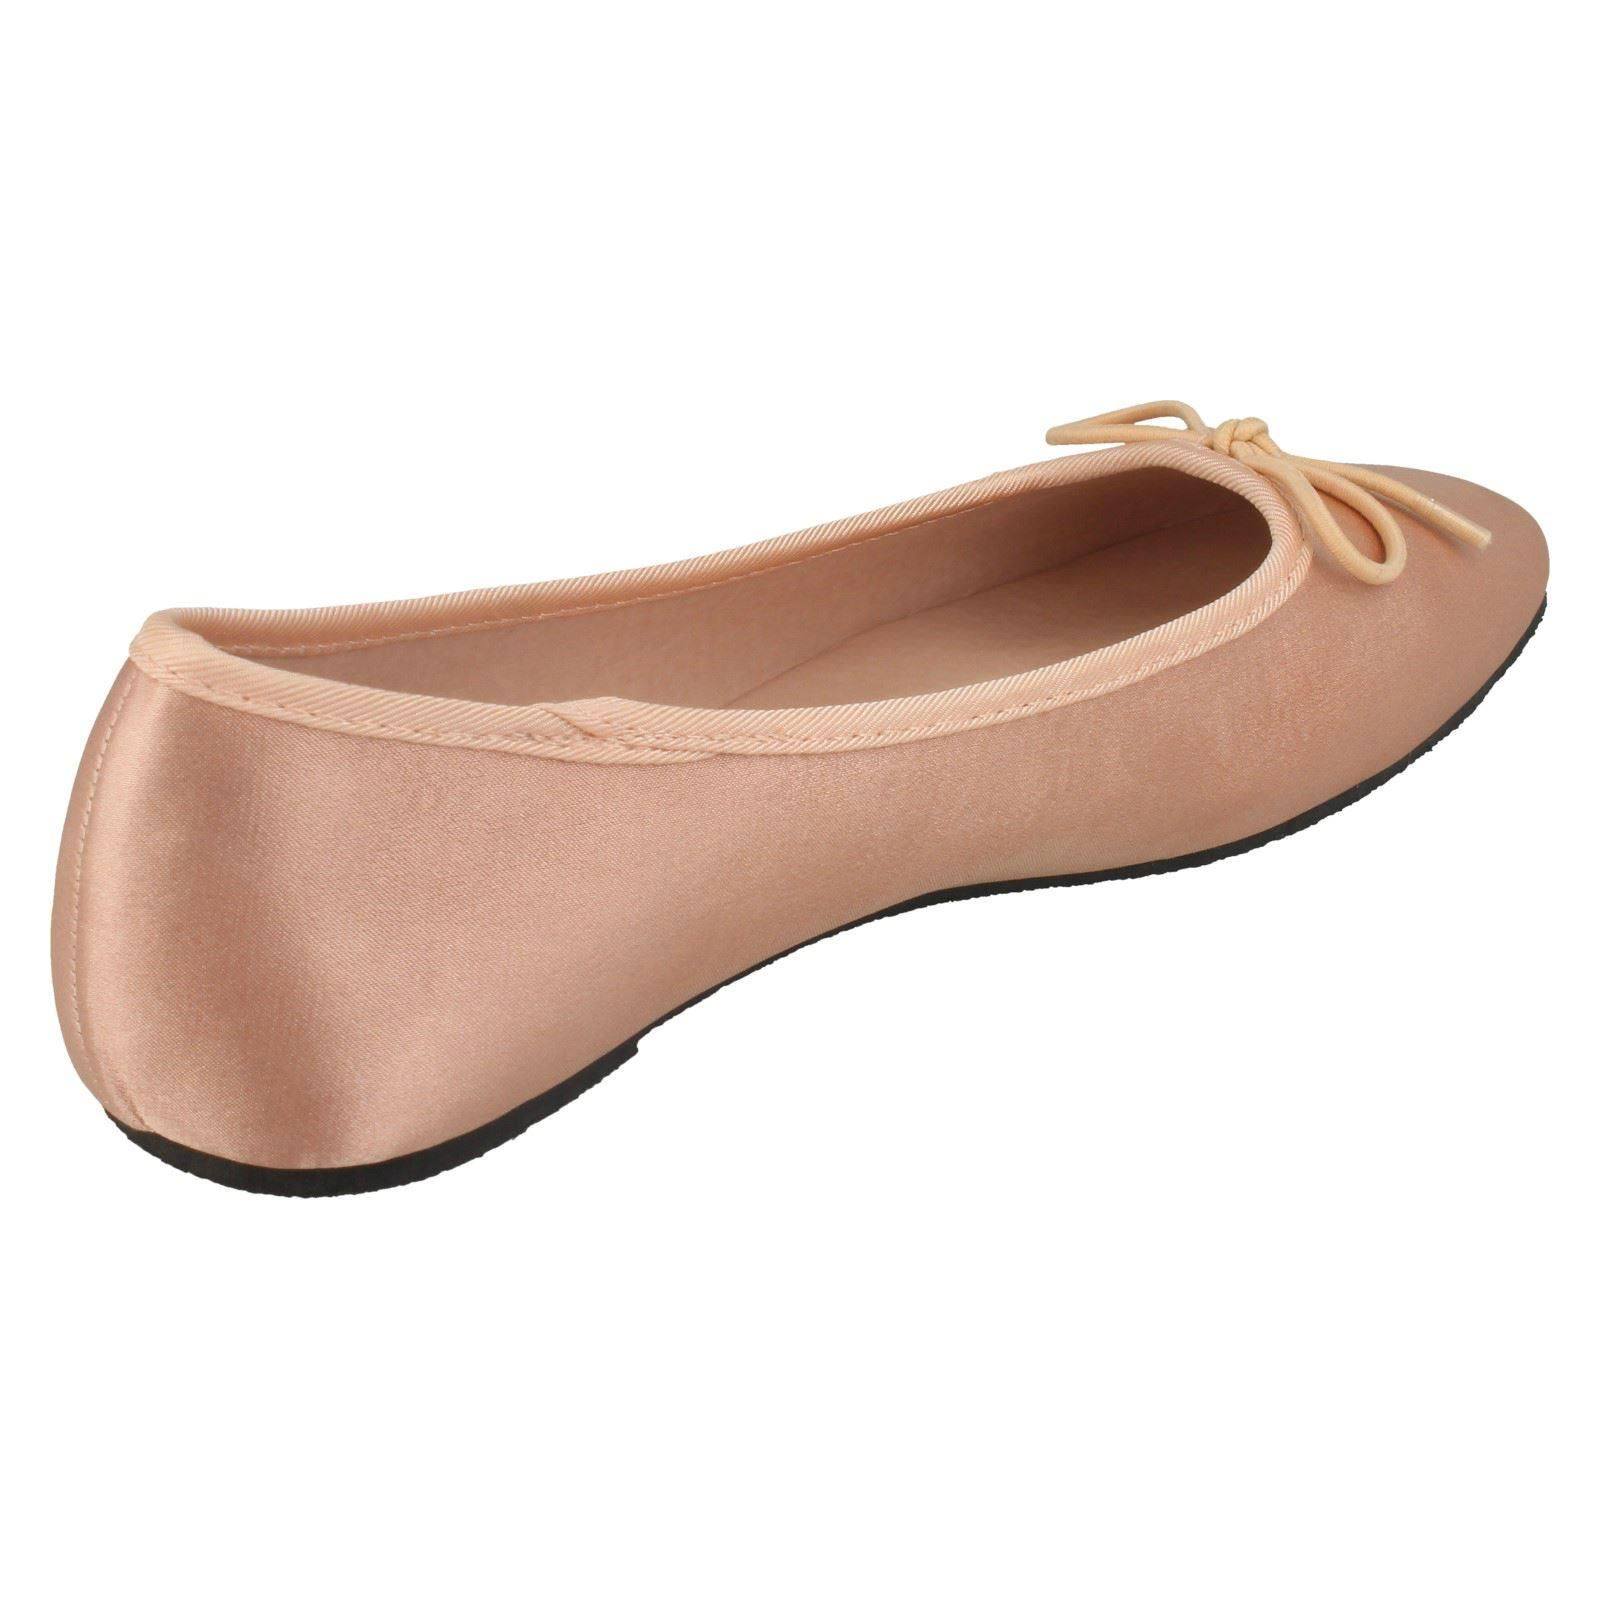 Spot on Damas Informal Zapatos raso Bailarina